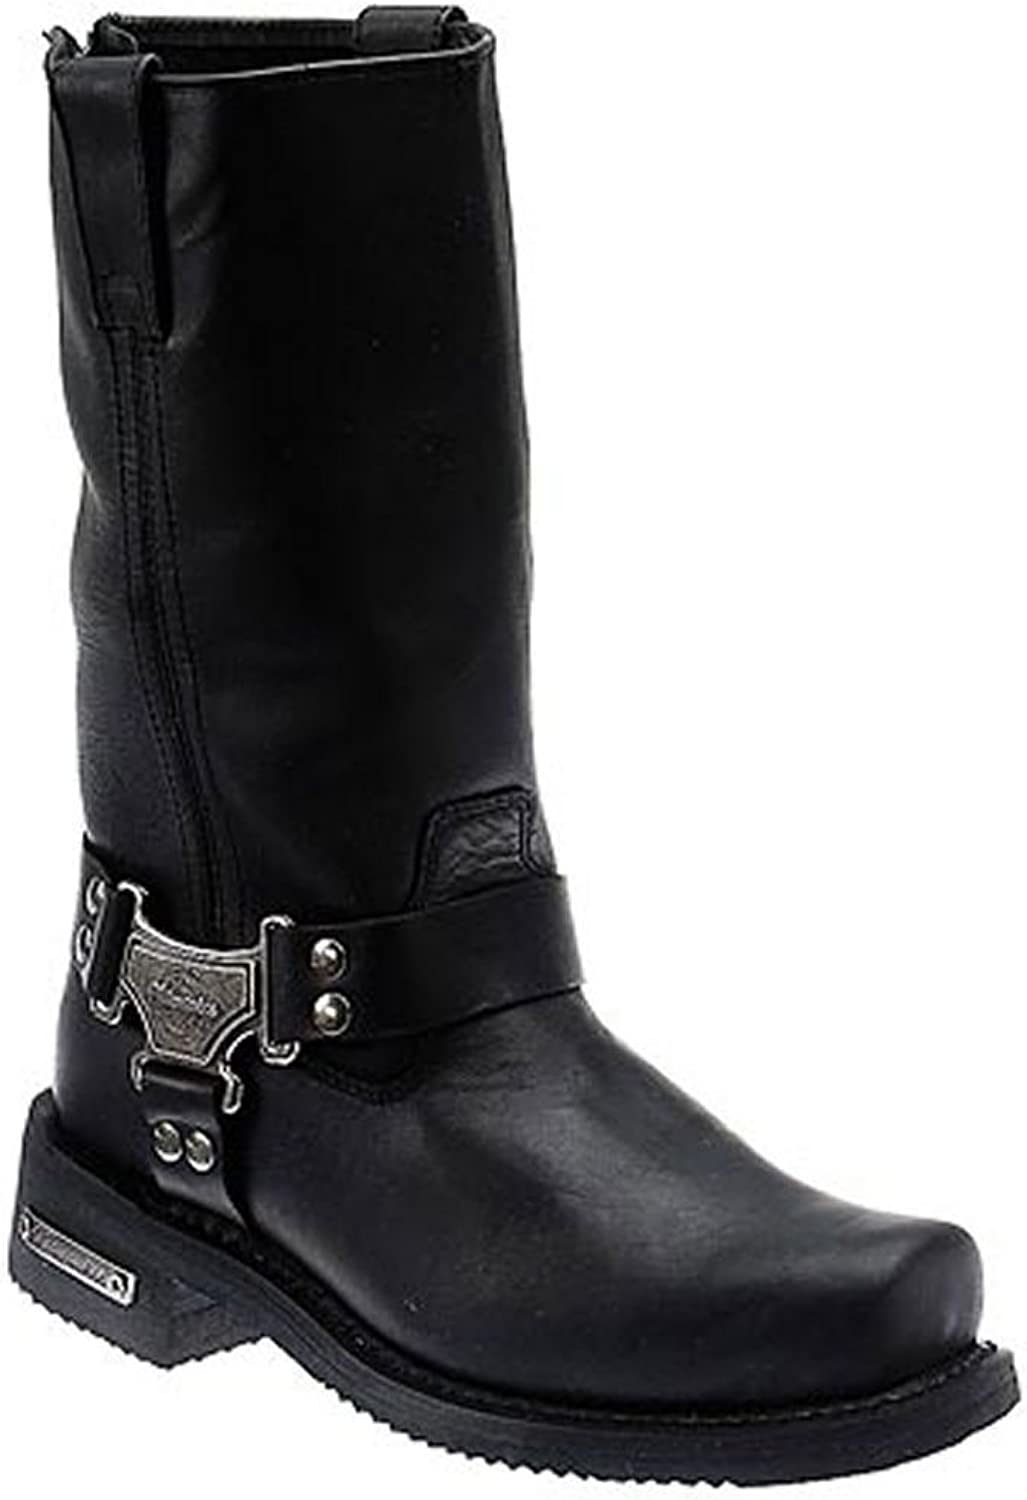 Milwaukee Motorcycle Clothing Company Classic Harness Leather Men's Motorcycle Boots (Black, Size 11EE)